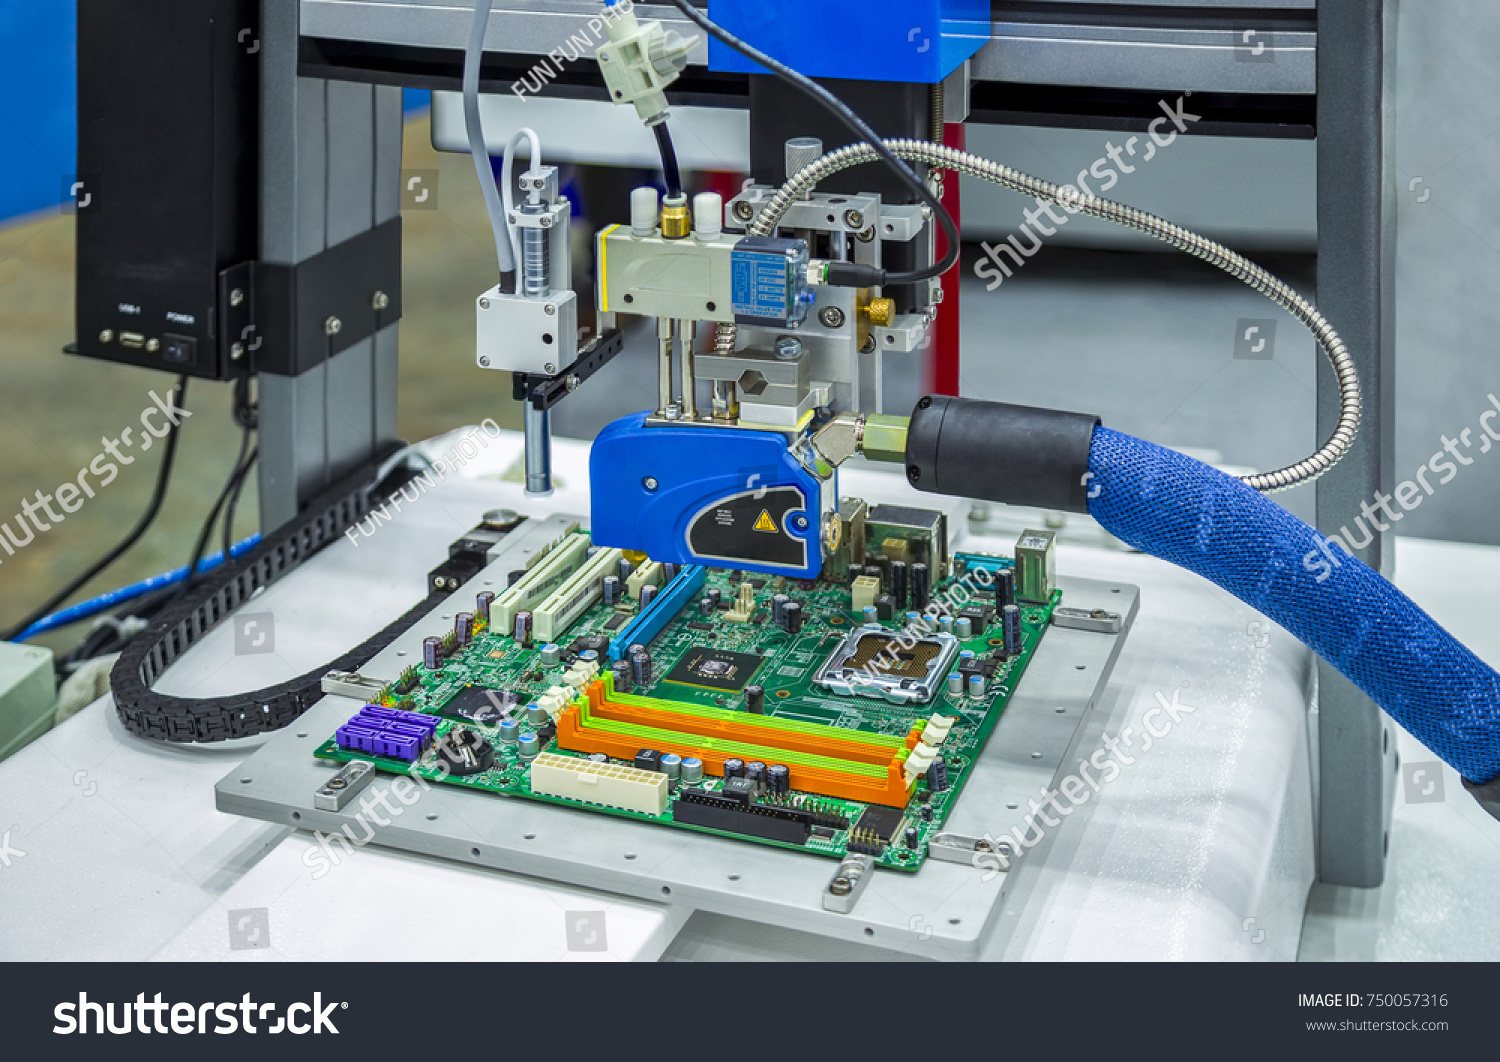 Automatic Hot Melt Glue Applicator Adhesive Stock Photo Edit Now Circuit Board Printed Control For Embroidery Machine And Dispensing Gun With Auger Valve Solder Onto A